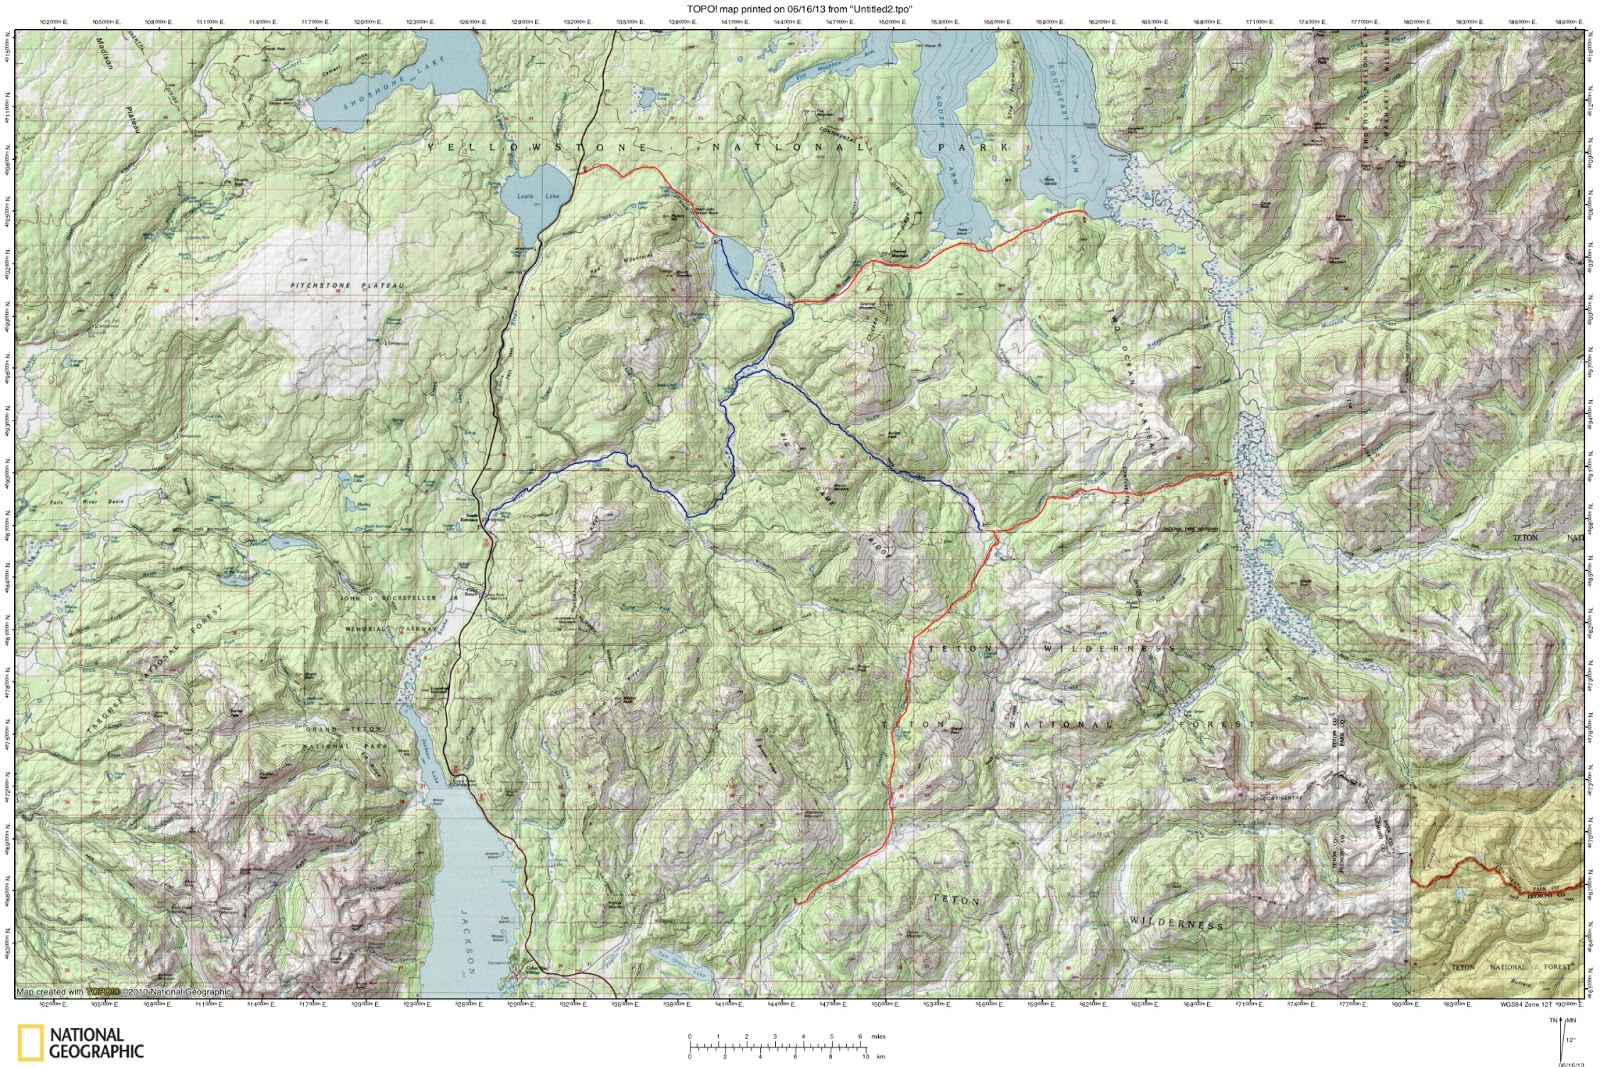 Topographic Map Of Yellowstone.Packrafting Guide To Yellowstone National Park Forrest Mccarthy